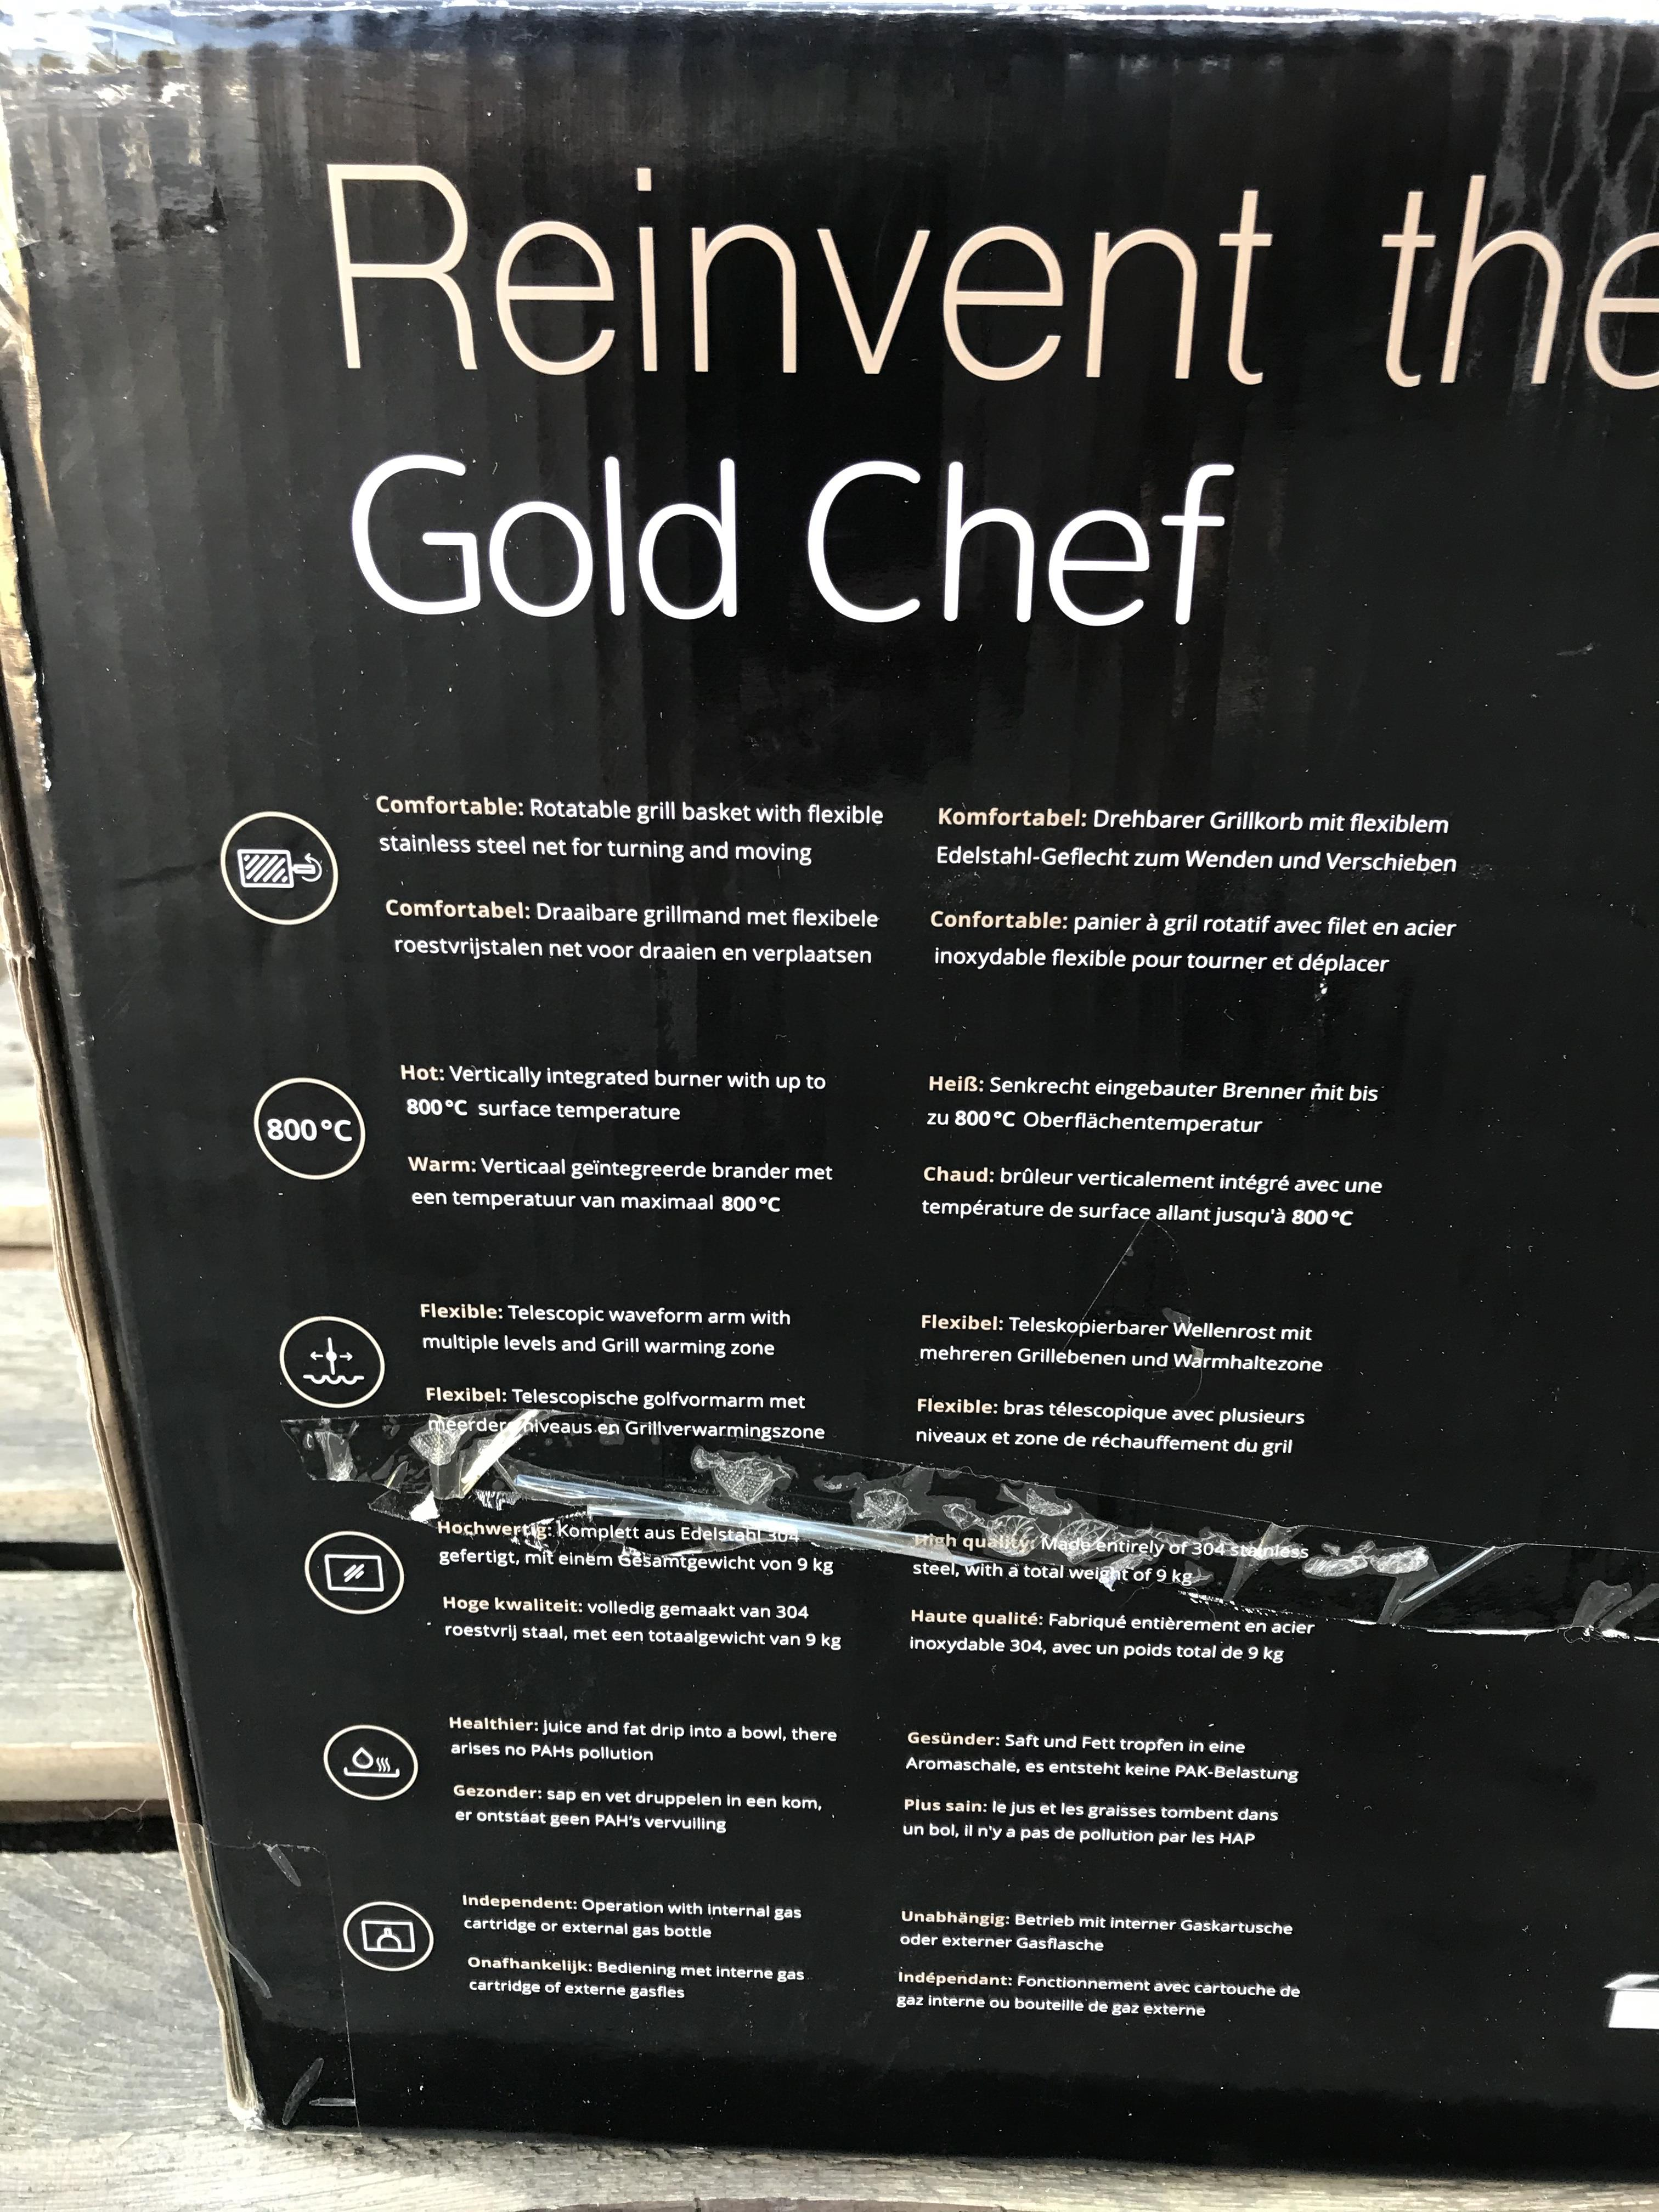 GOLD CHEF TWO 800C ROTISSERIE GRILL - Image 4 of 6